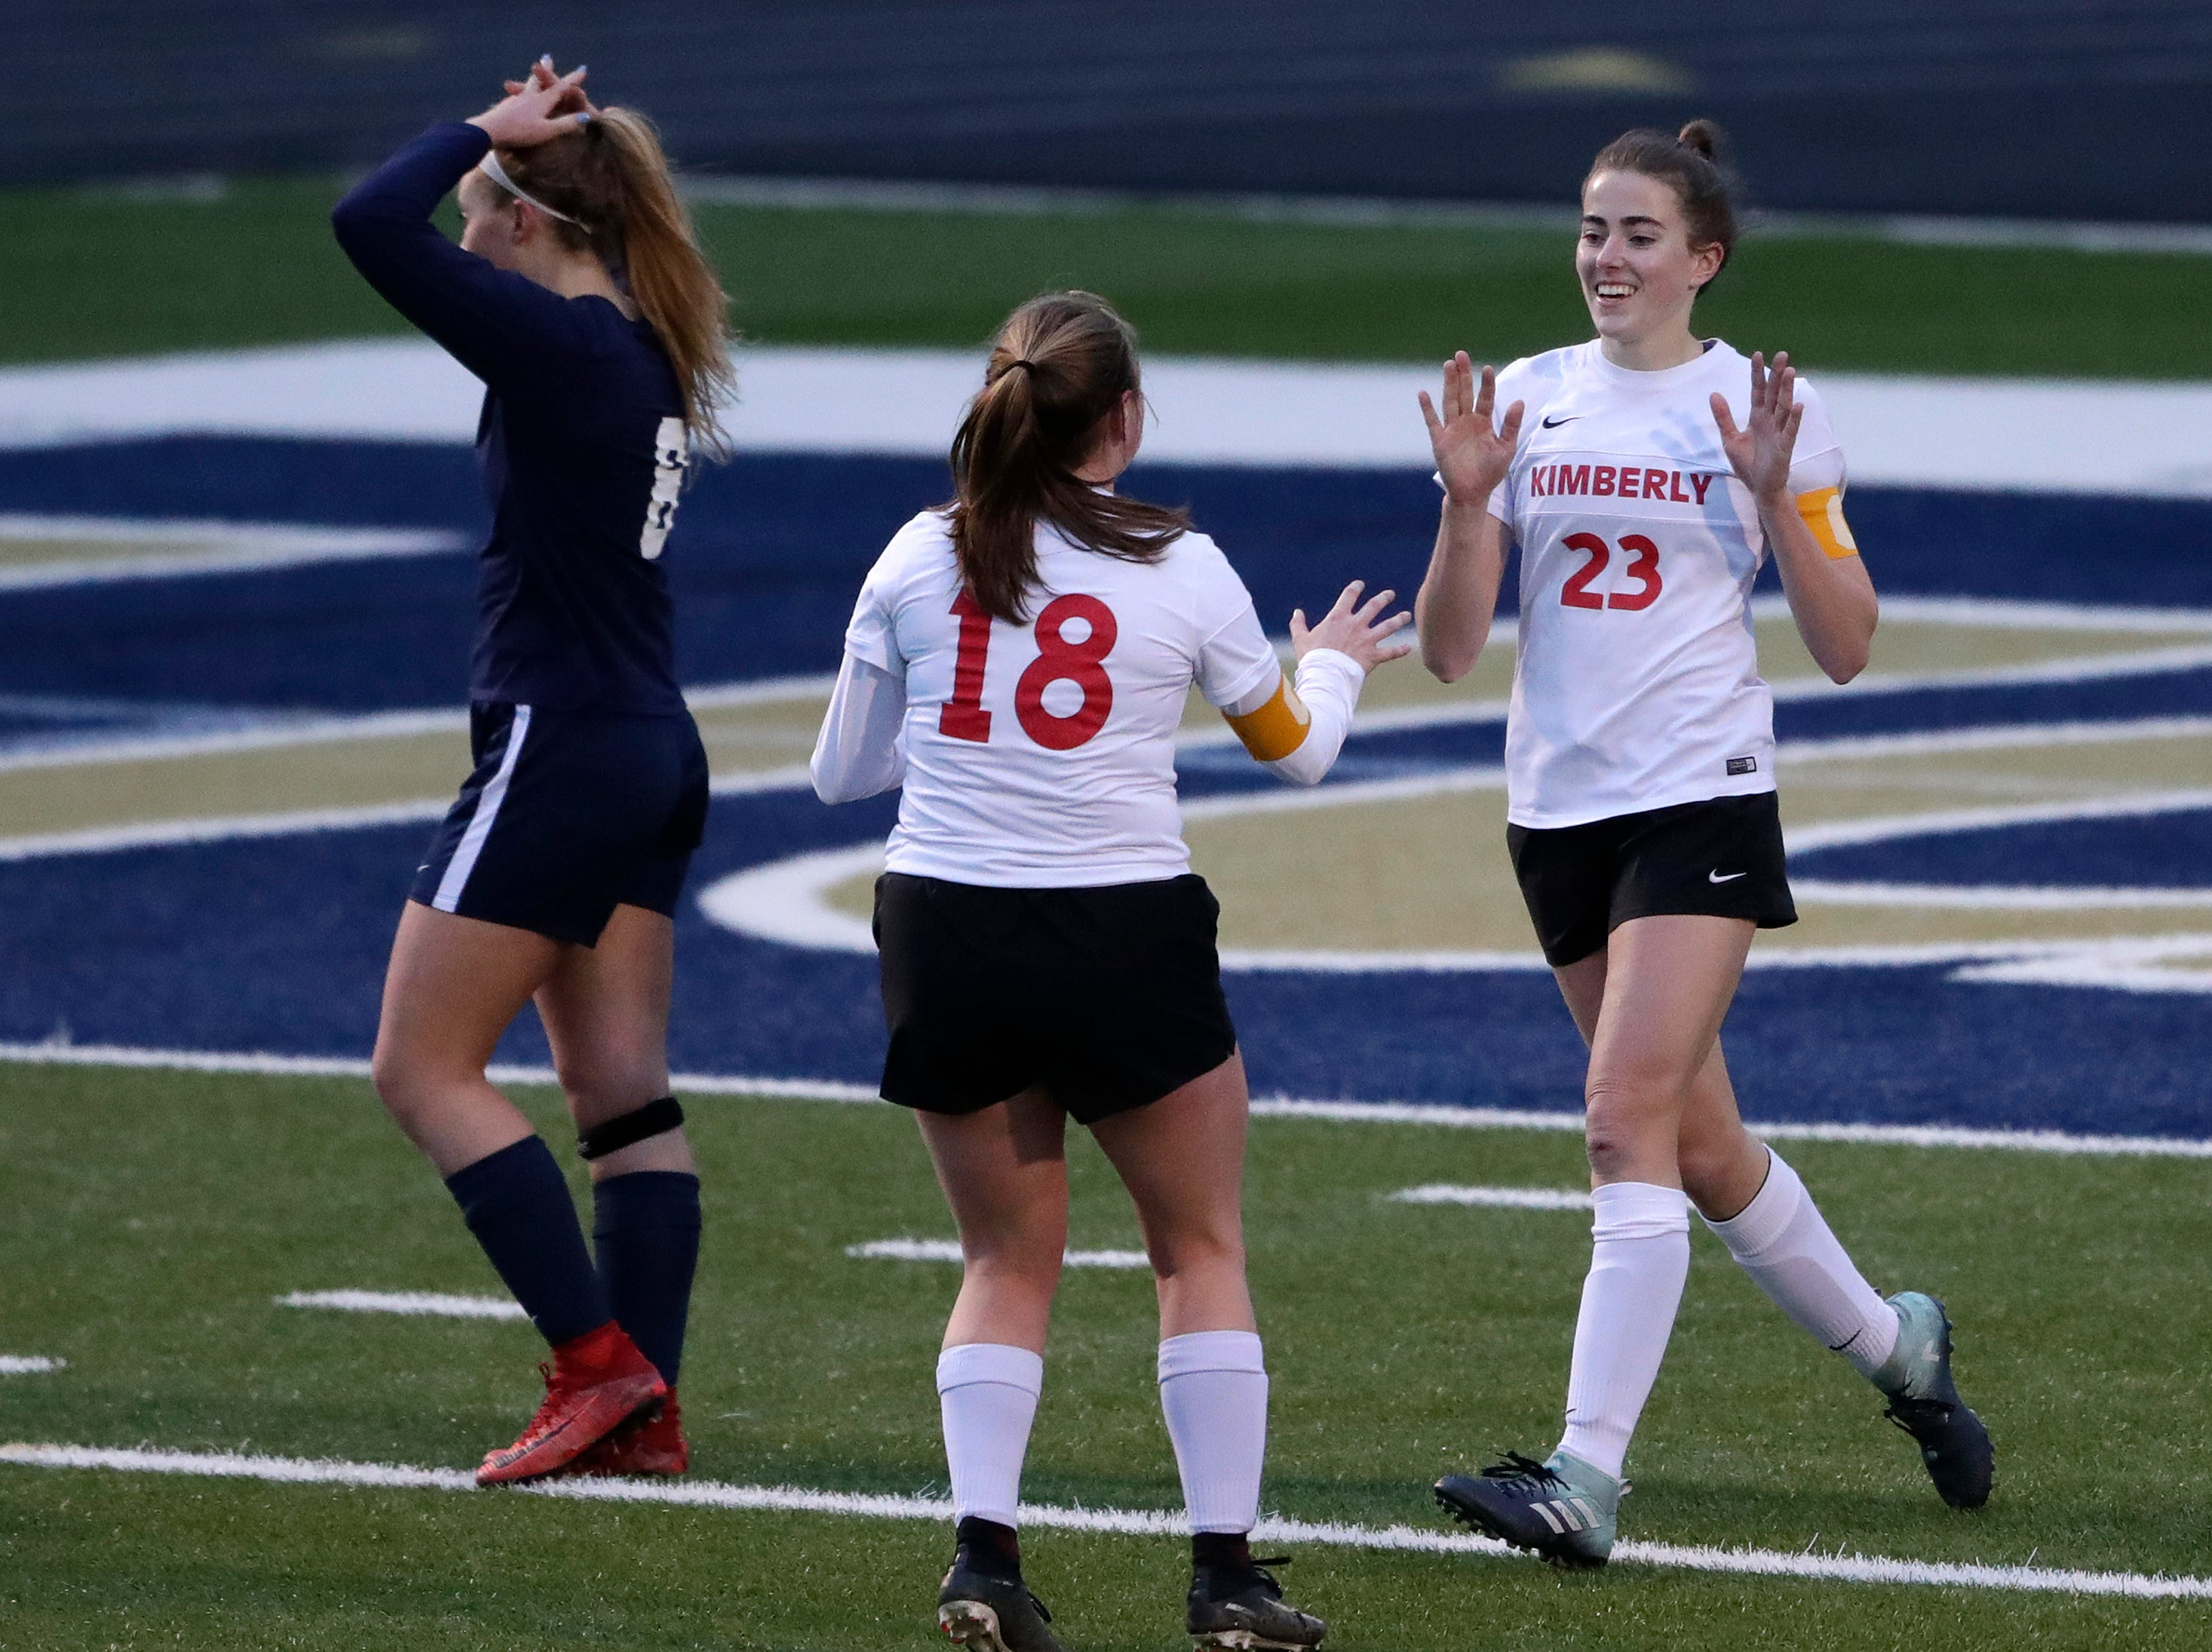 Kimberly High School's Elsi Twombly (23) celebrates scoring a goal with Lexi Huntington (18) against Appleton North High School's Elaina Anderson (8) during their girls soccer game Thursday, May 9, 2019, in Appleton, Wis. 